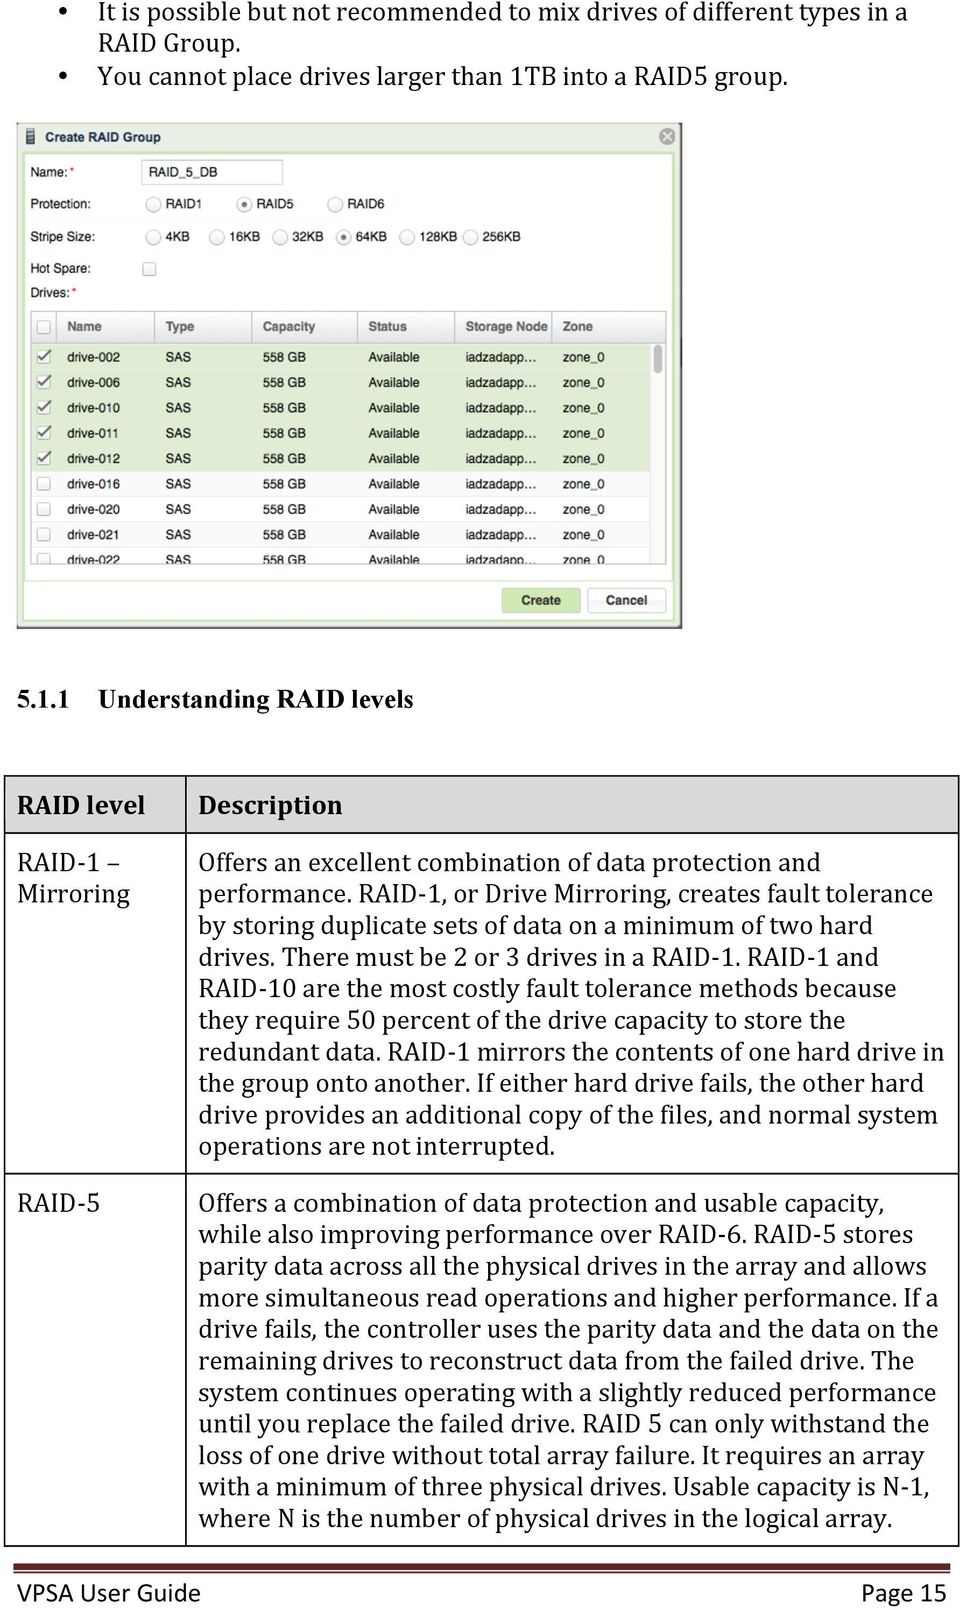 RAID- 1, or Drive Mirroring, creates fault tolerance by storing duplicate sets of data on a minimum of two hard drives. There must be 2 or 3 drives in a RAID- 1.